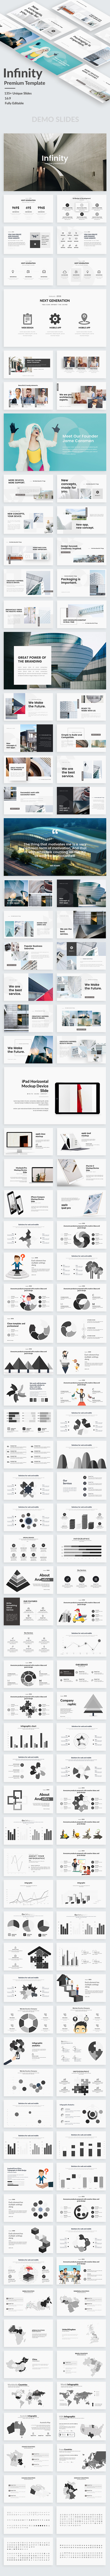 GraphicRiver Infinity Creative Powerpoint Template 20959335